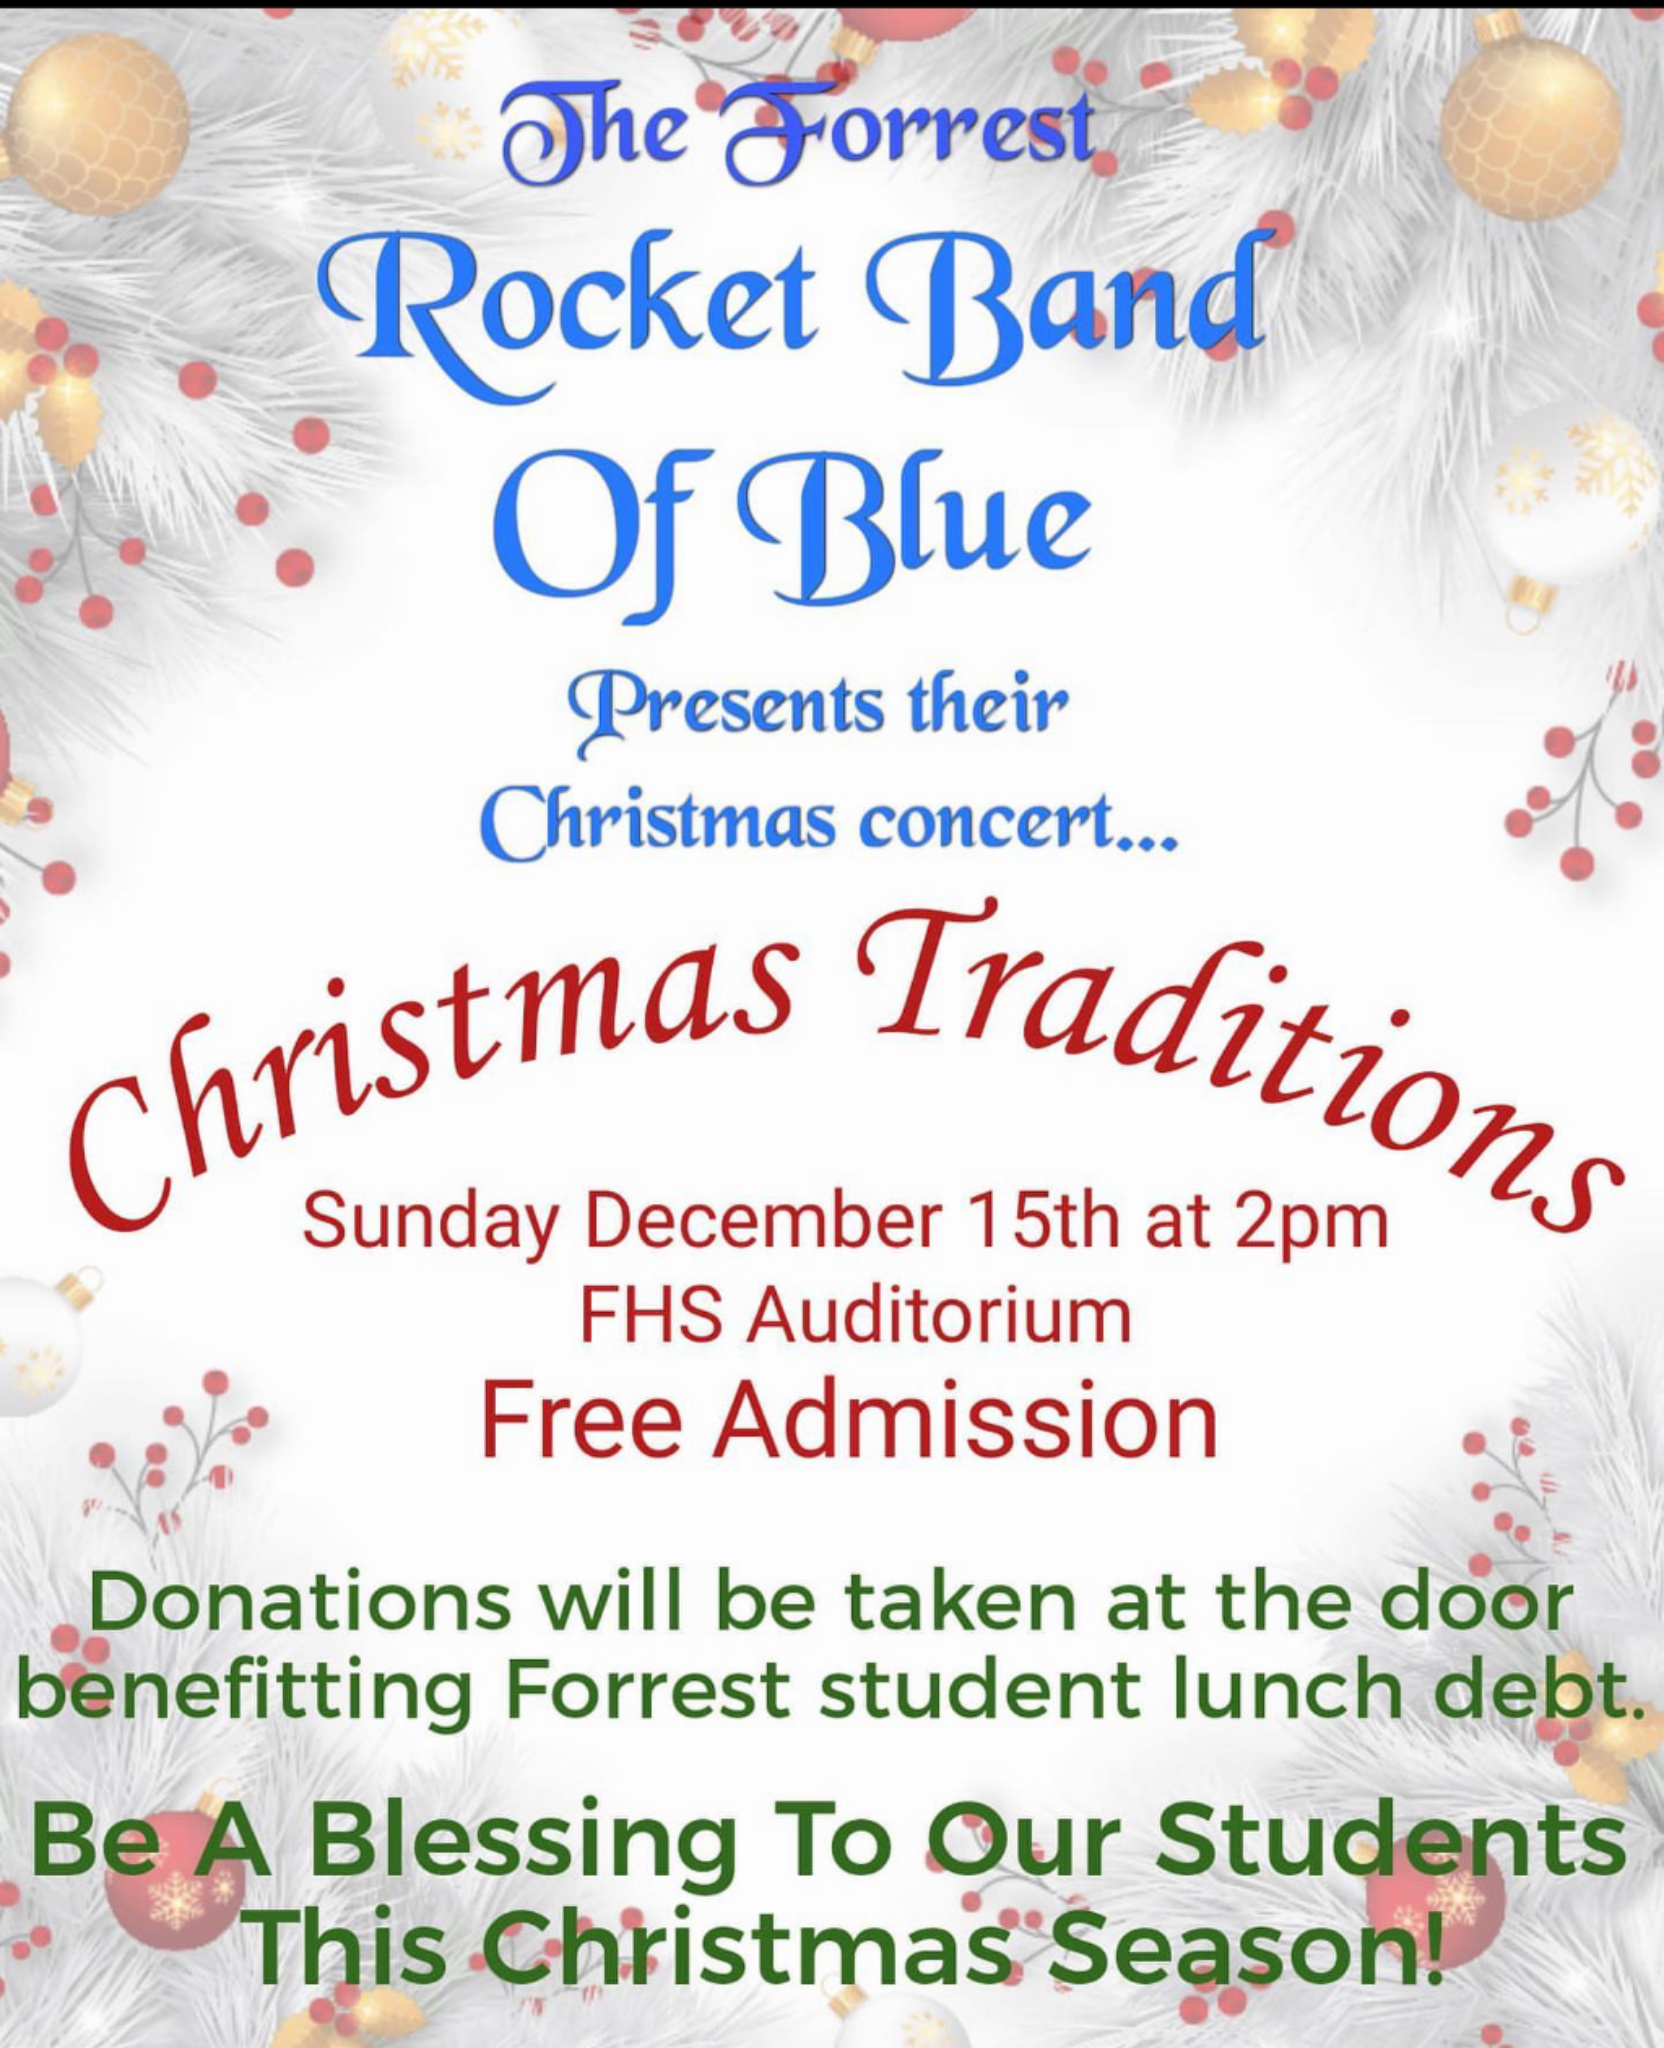 Forrest Band of Blue Christmas